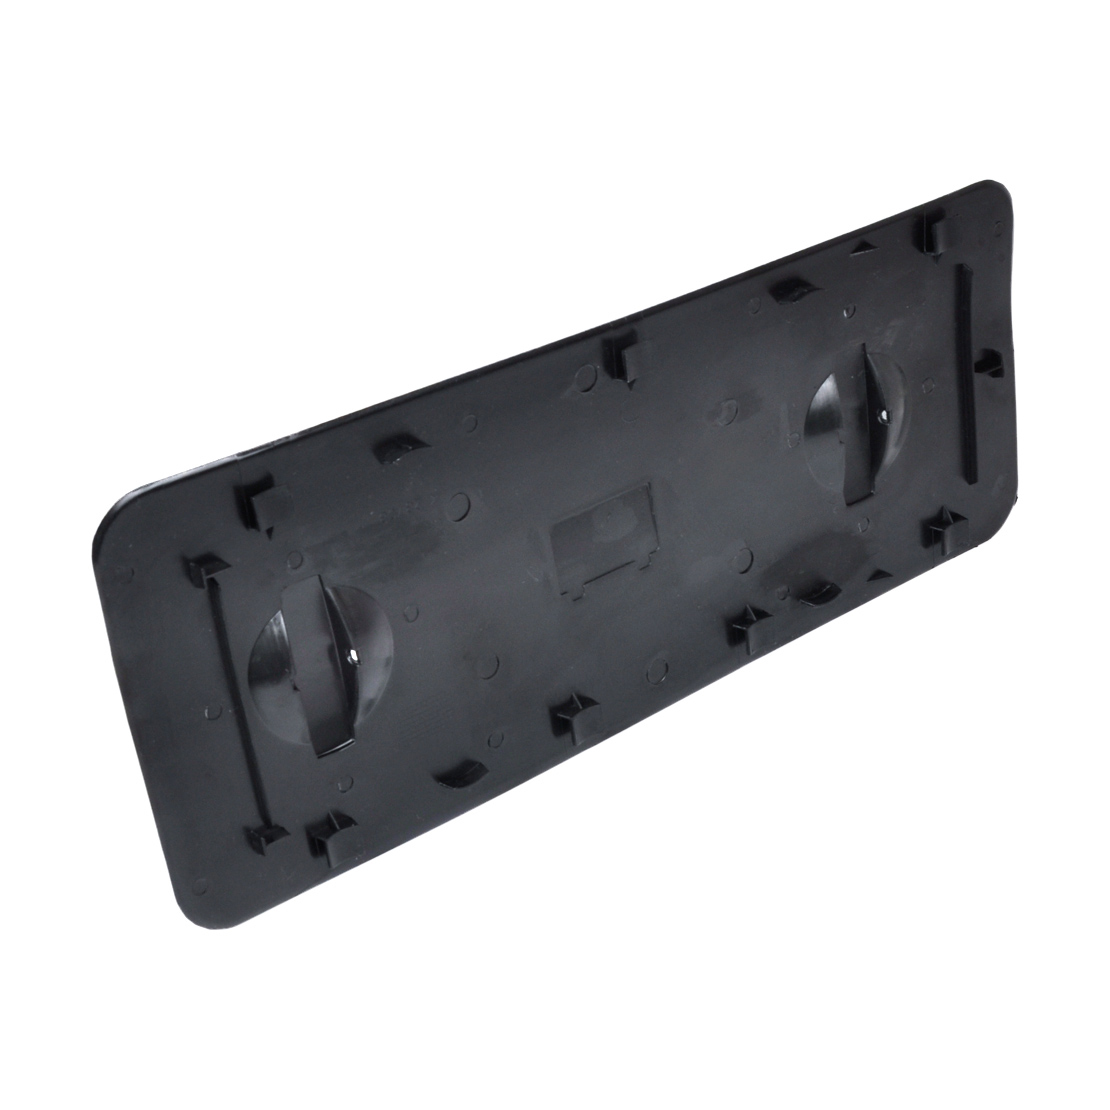 new black battery tray cover 8e1819422a 01c for audi a4 8e. Black Bedroom Furniture Sets. Home Design Ideas